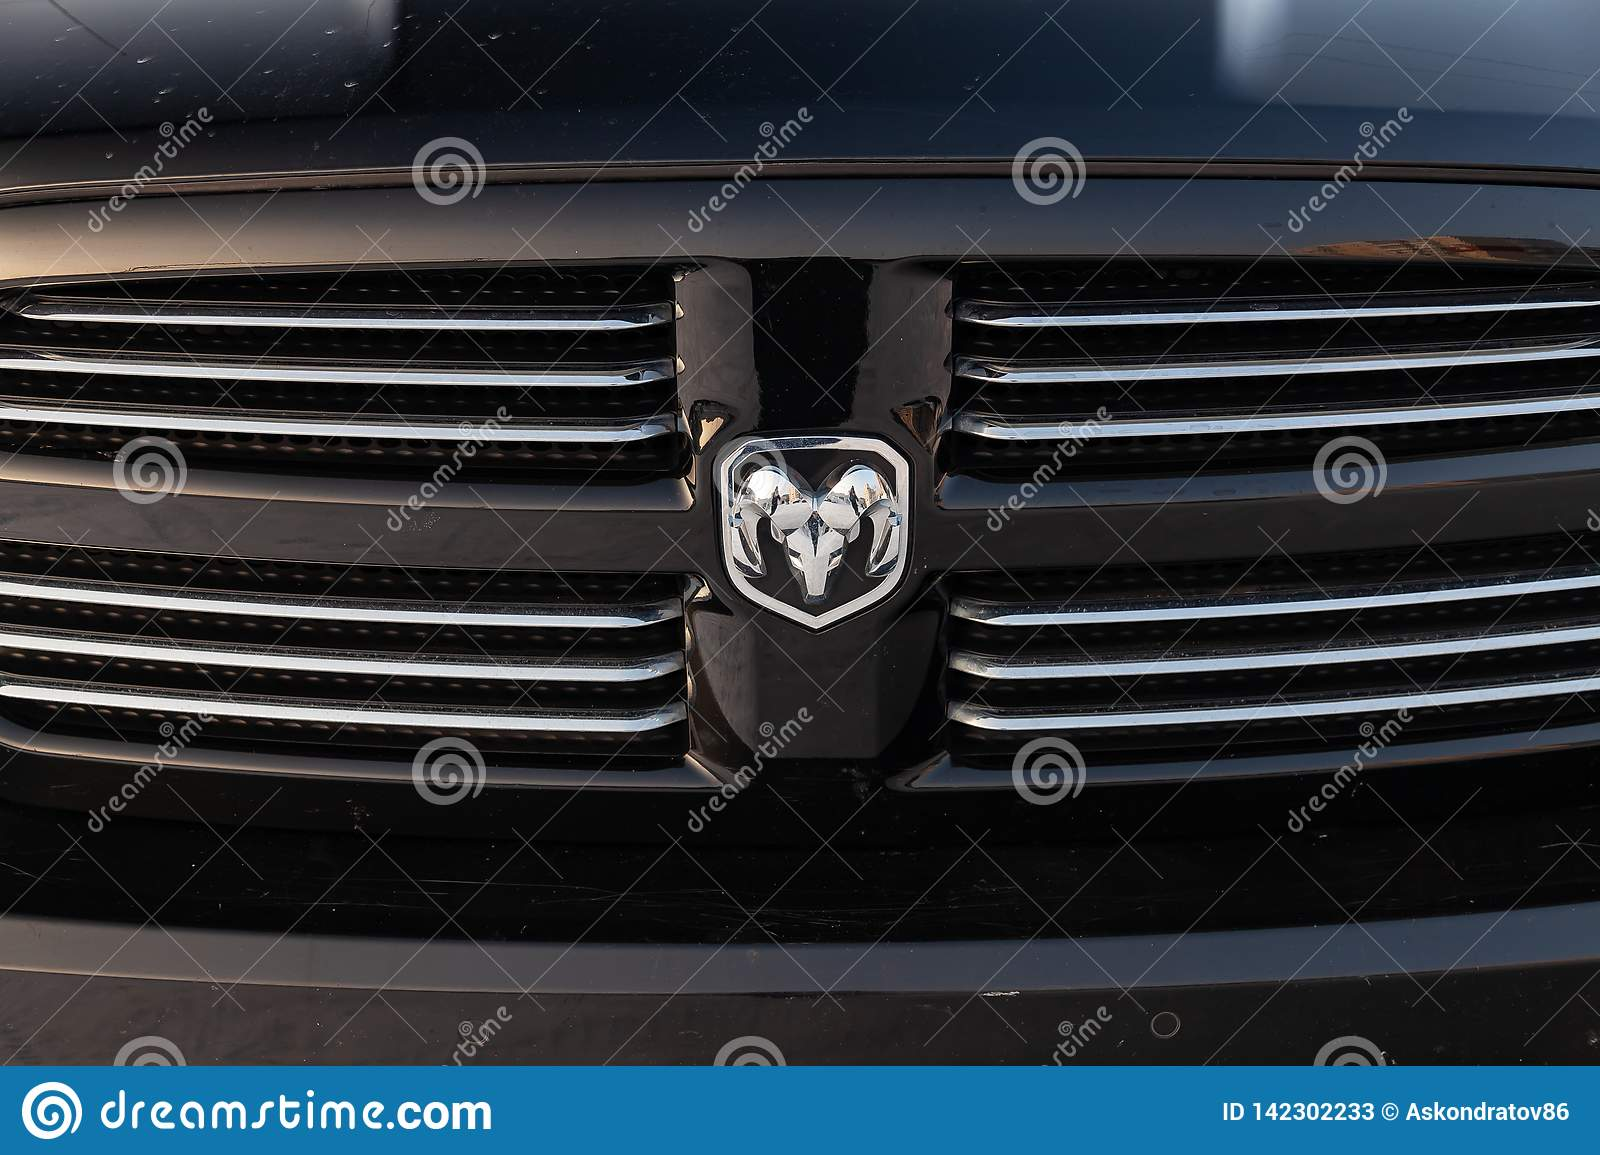 Black Dodge Ram with an engine of 5.7 liters front radiator grille view on the car parking with snow background